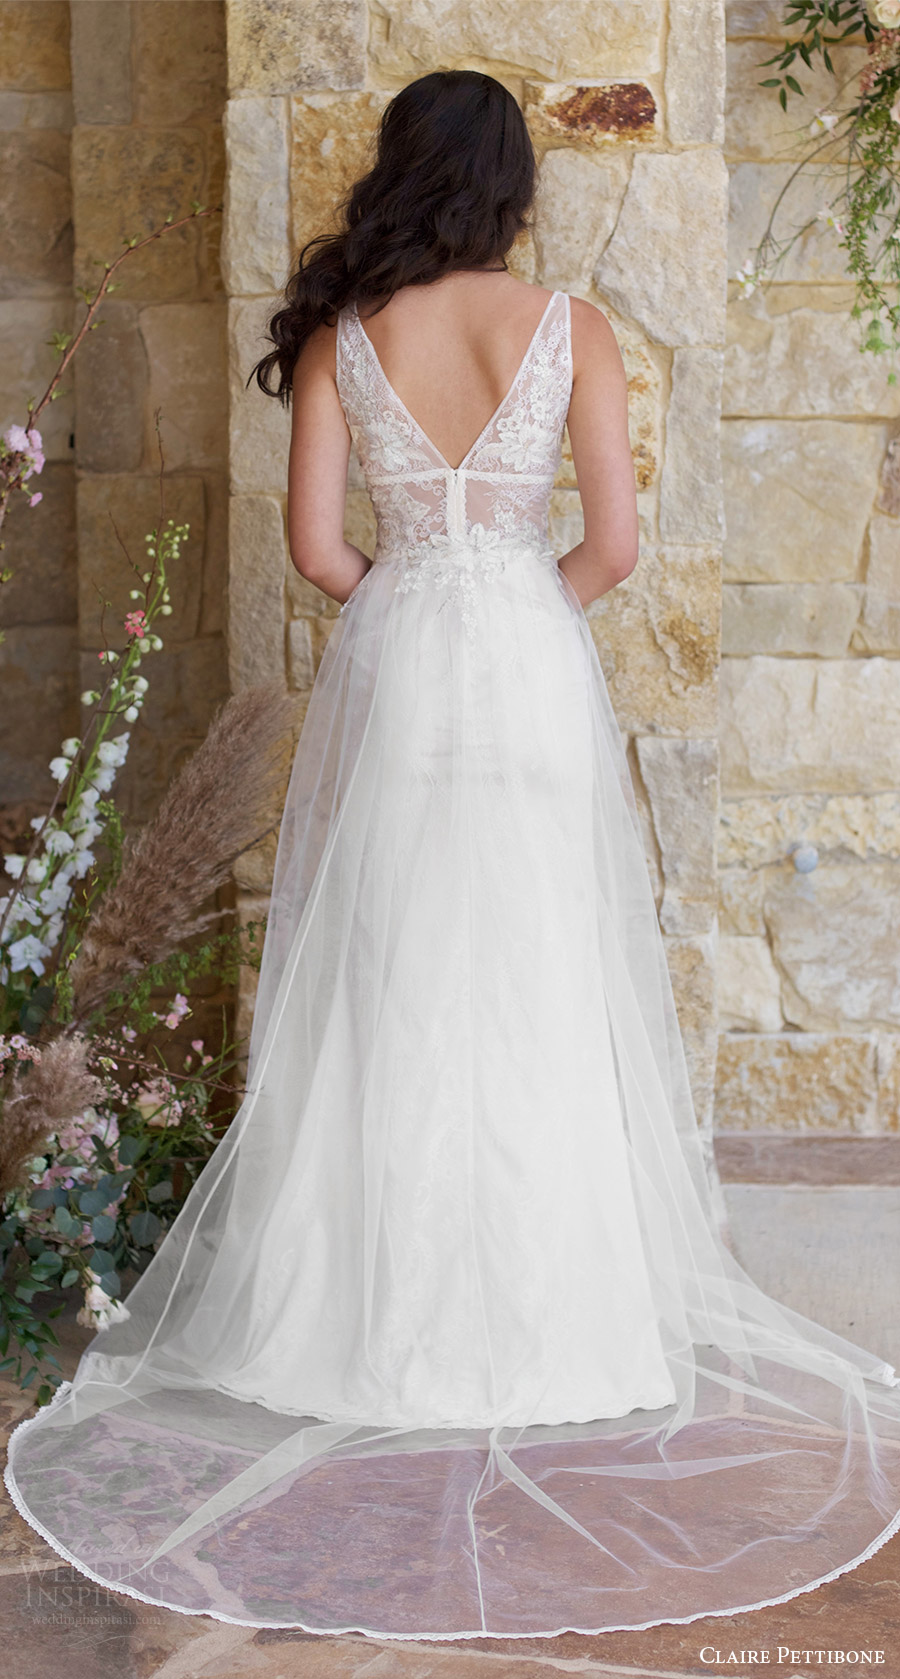 claire pettibone spring 2018 bridal sleeveless deep v neck straps lace bodice a line wedding dress (champagne) bv romantic long train